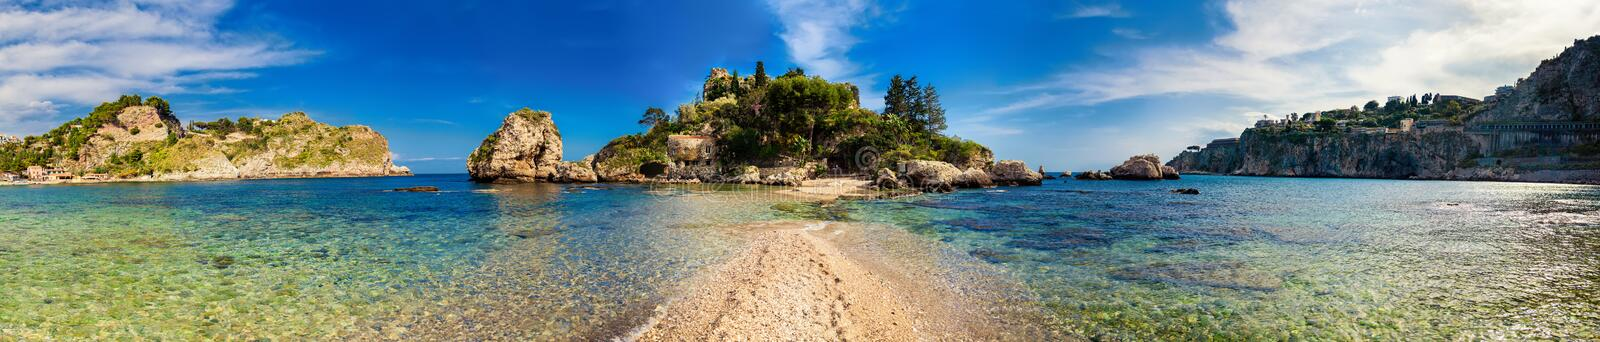 Panorama of Isola Bella in Taormina royalty free stock photography